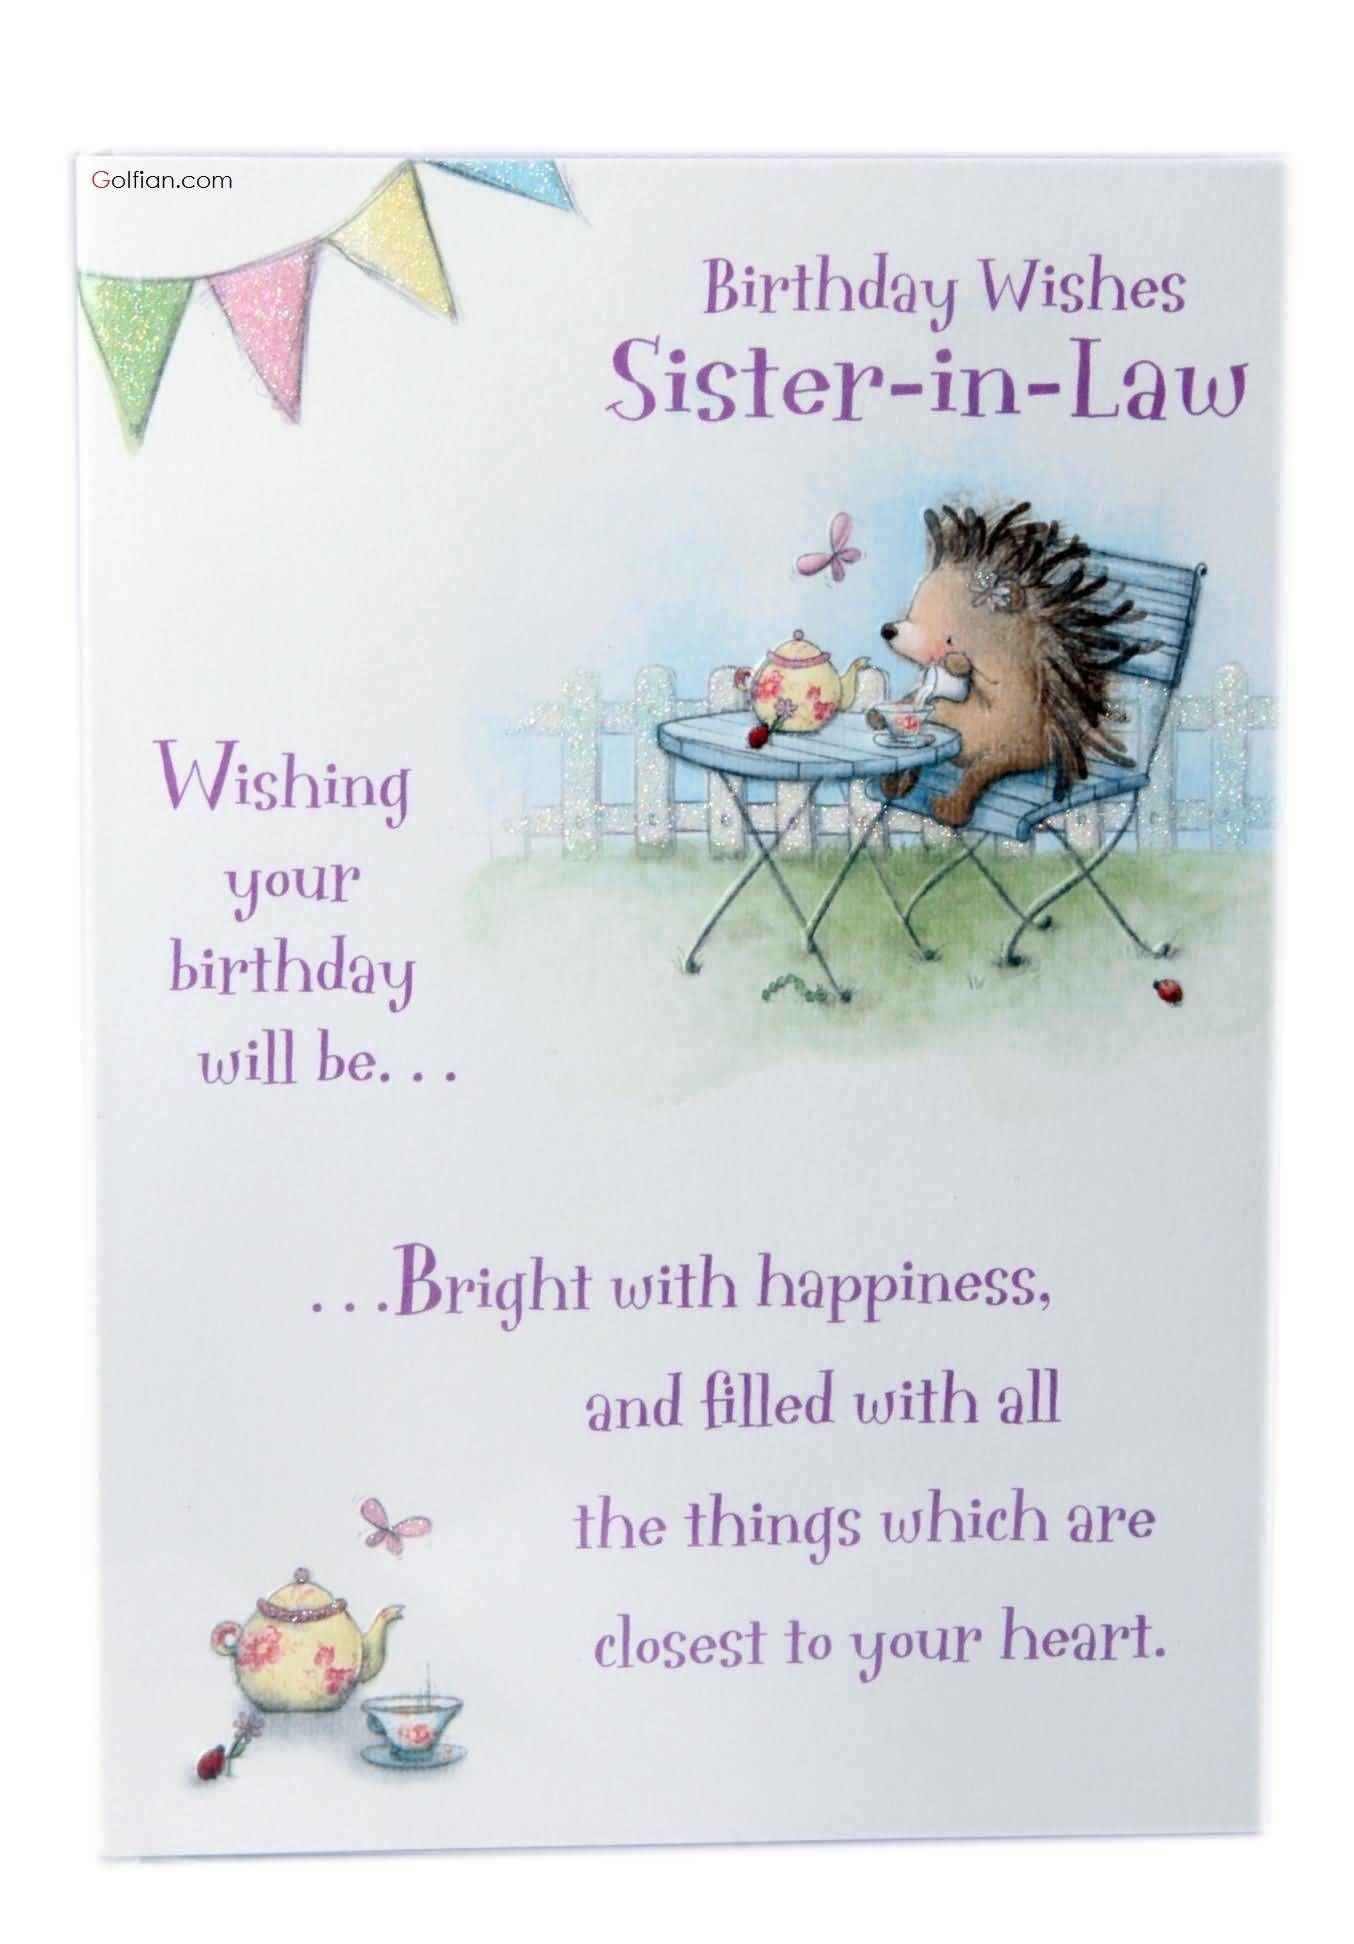 birthday message for sister in law tagalog ; 888f3acbc26c4b4fb7ecaad84a796f4f